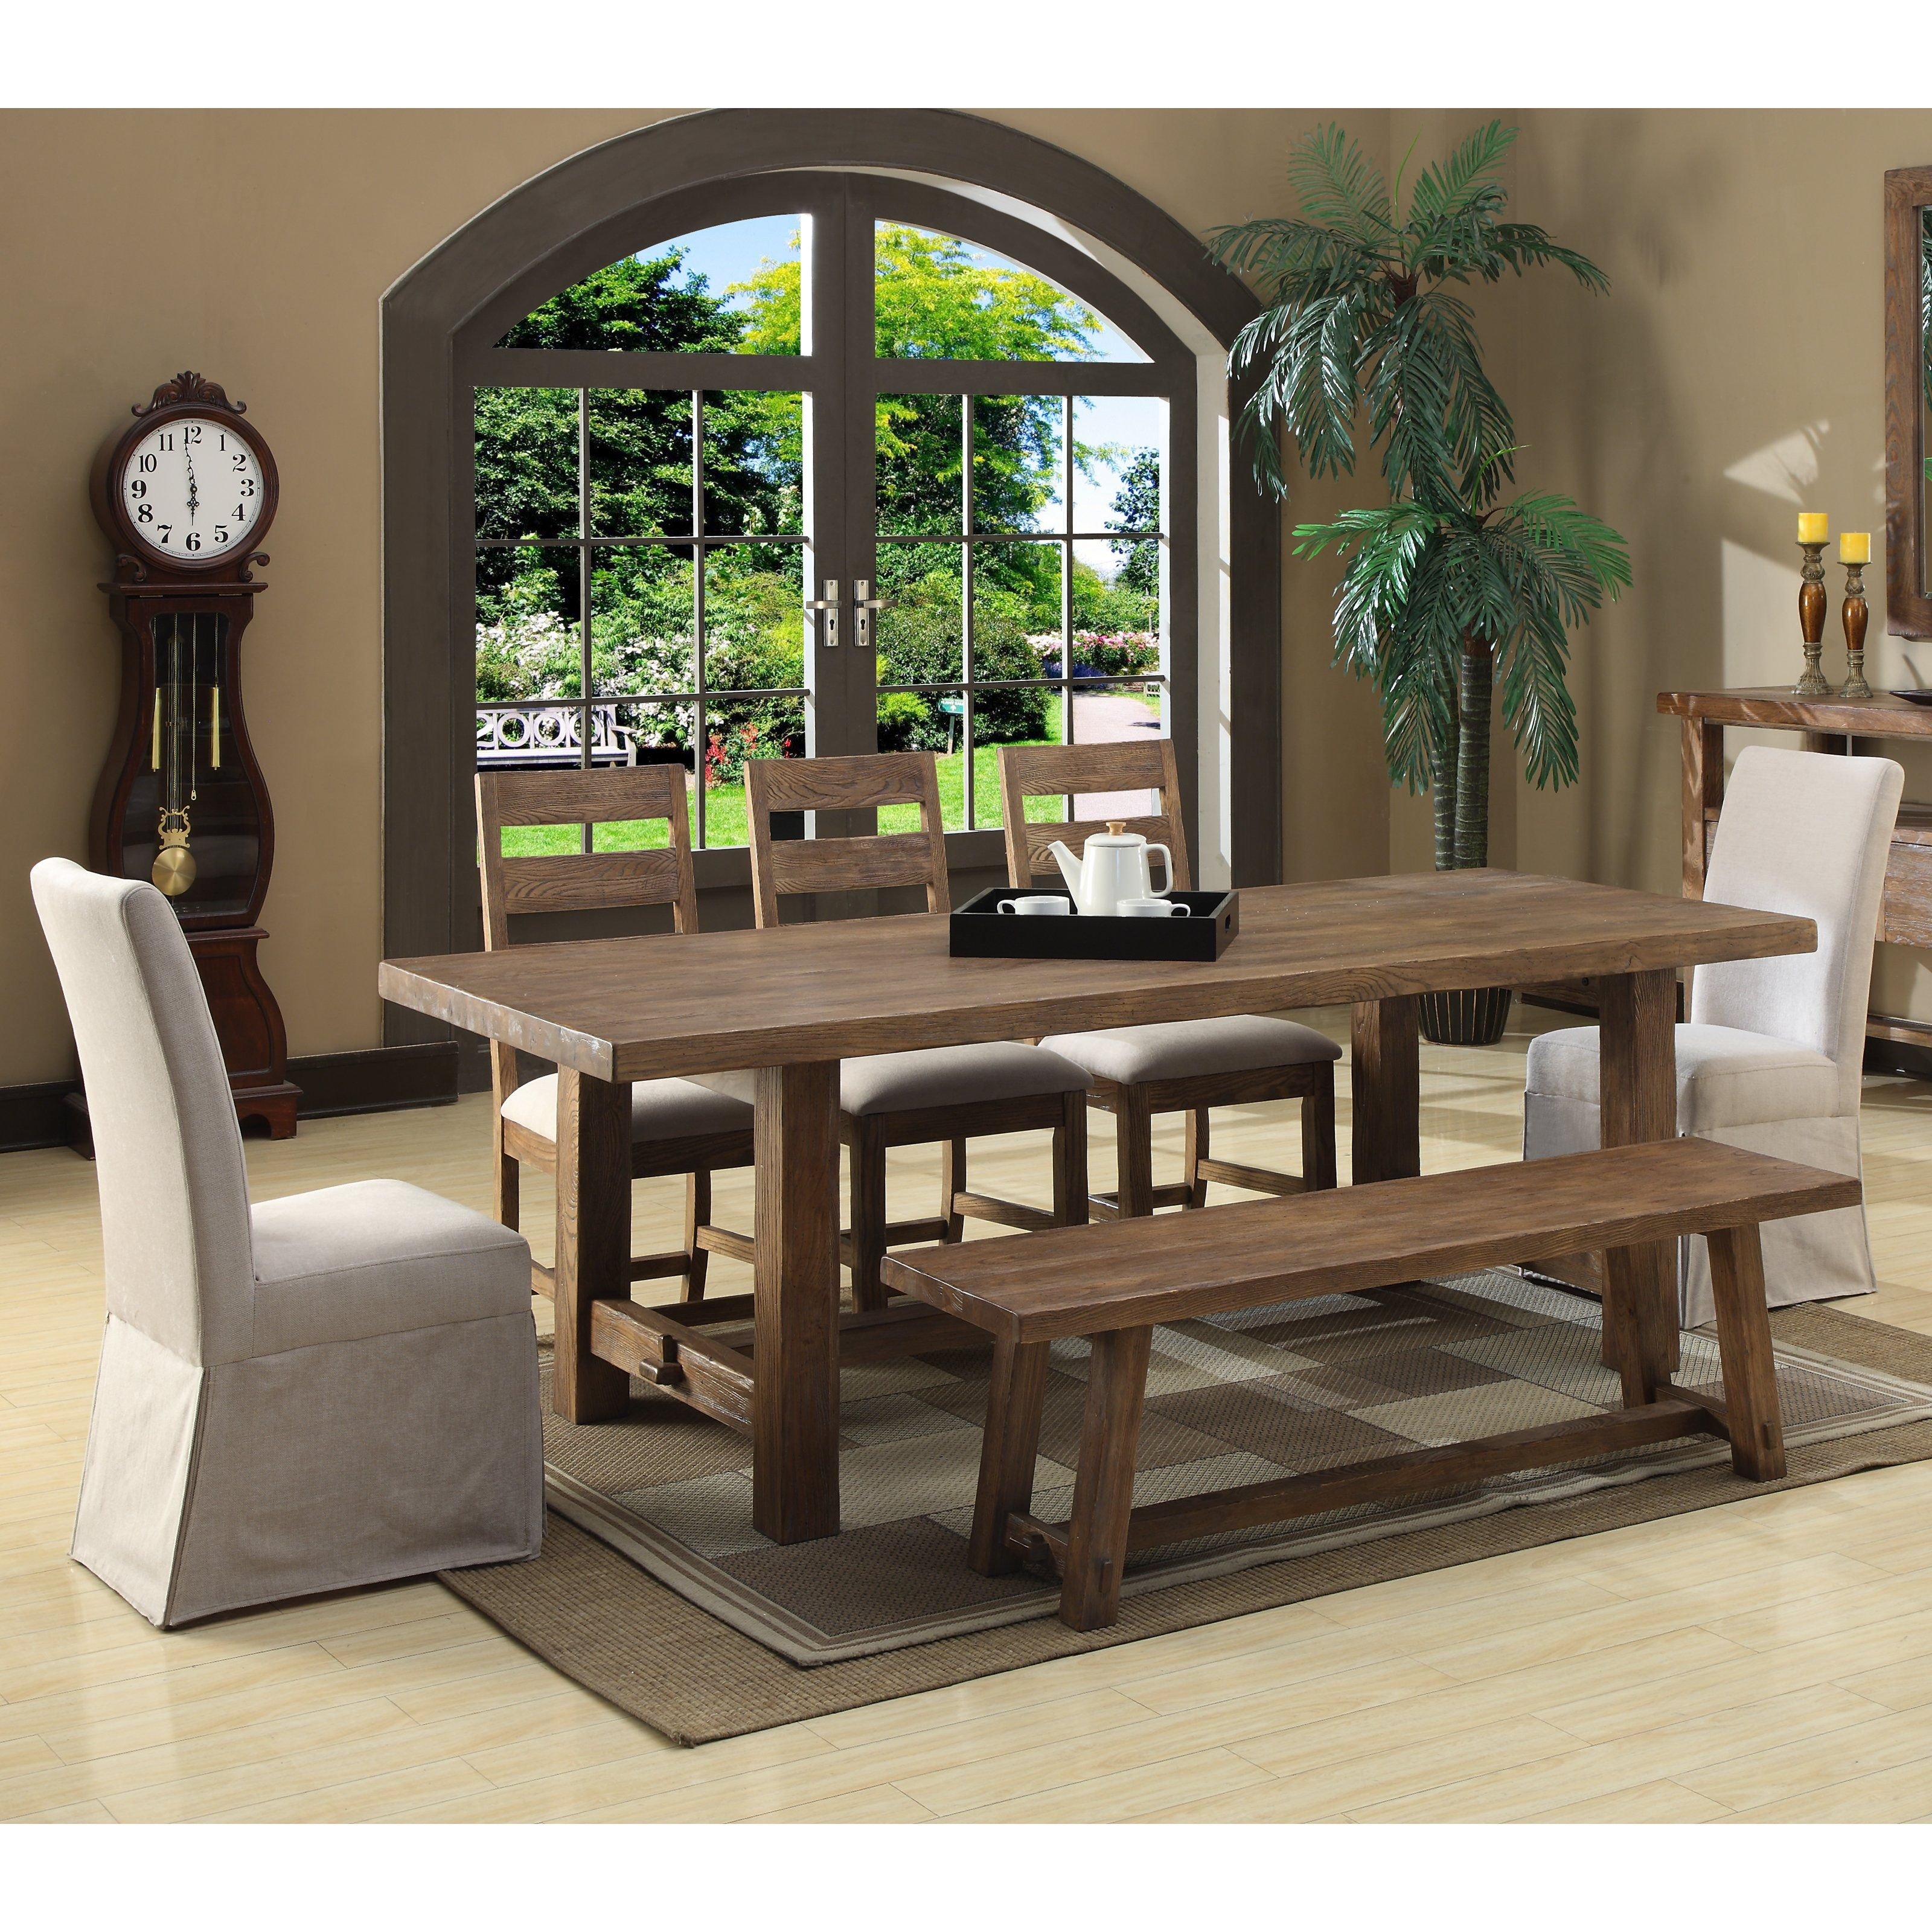 Cute For Casual Dining Room Emerald Home Bellevue 7 Pc Dining Set 2401 99 Dining Table In Kitchen Dining Table Emerald Home Furnishings